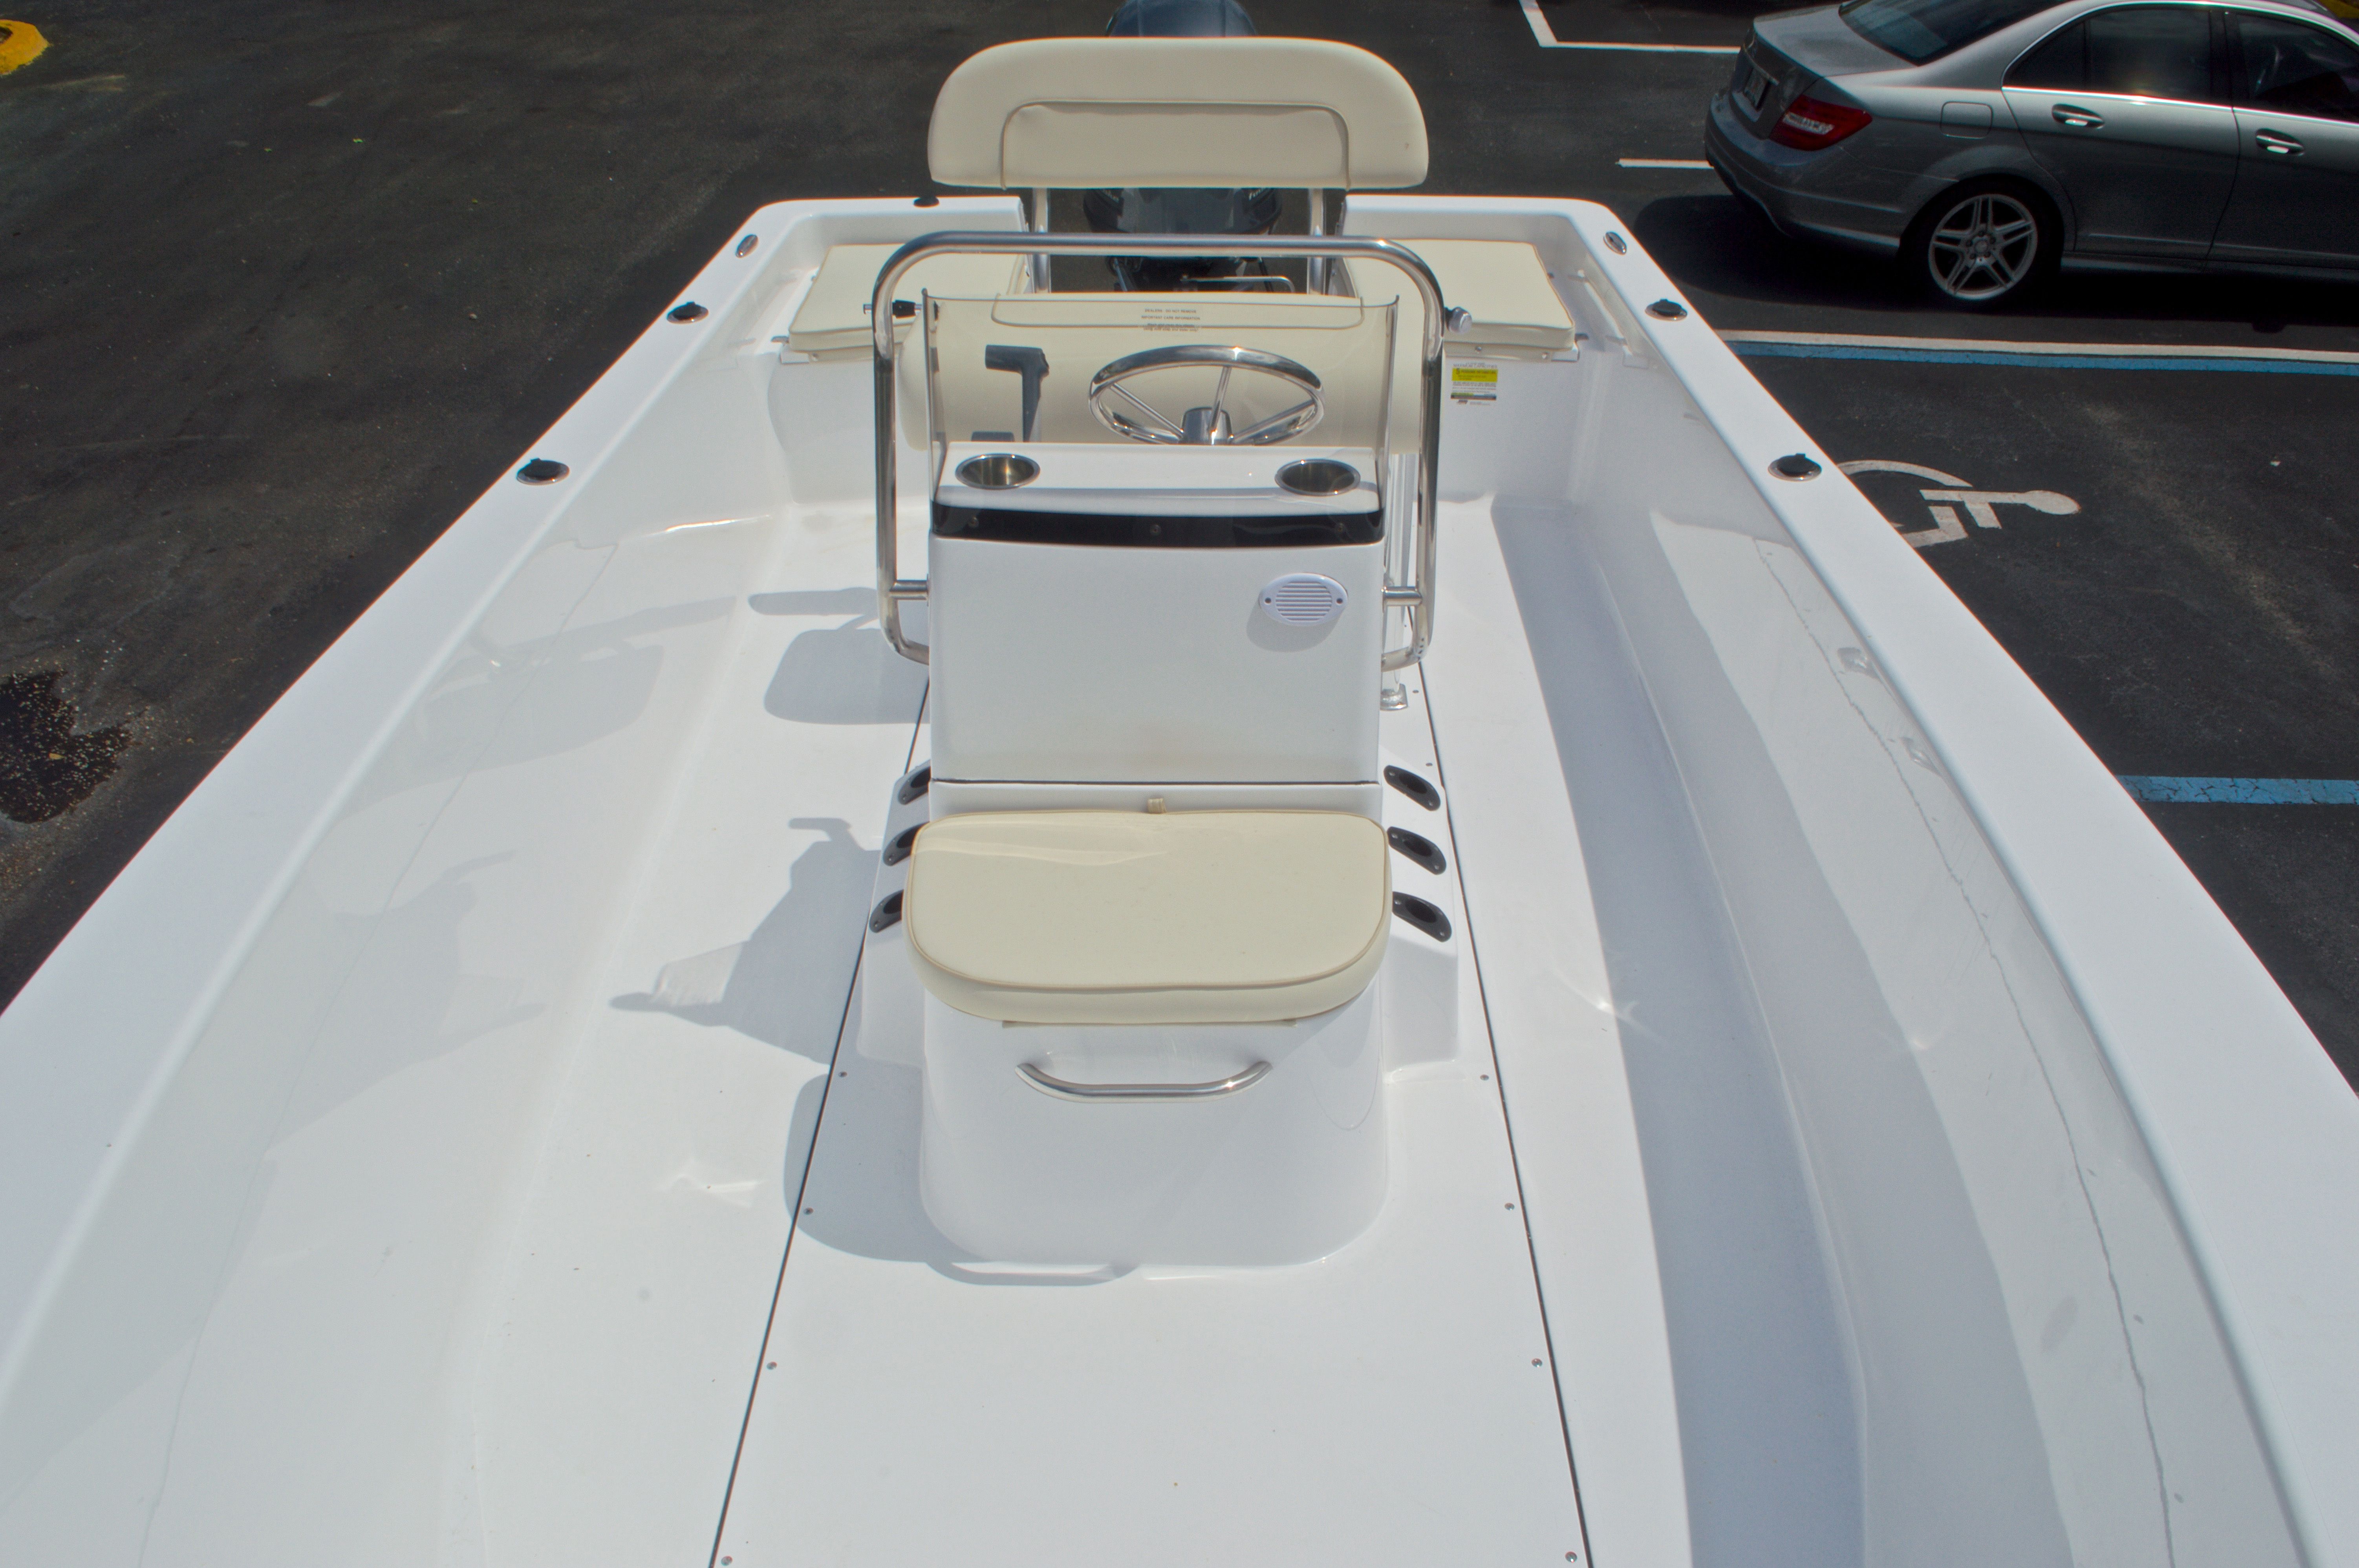 Thumbnail 18 for New 2017 Sportsman 19 Island Reef boat for sale in West Palm Beach, FL